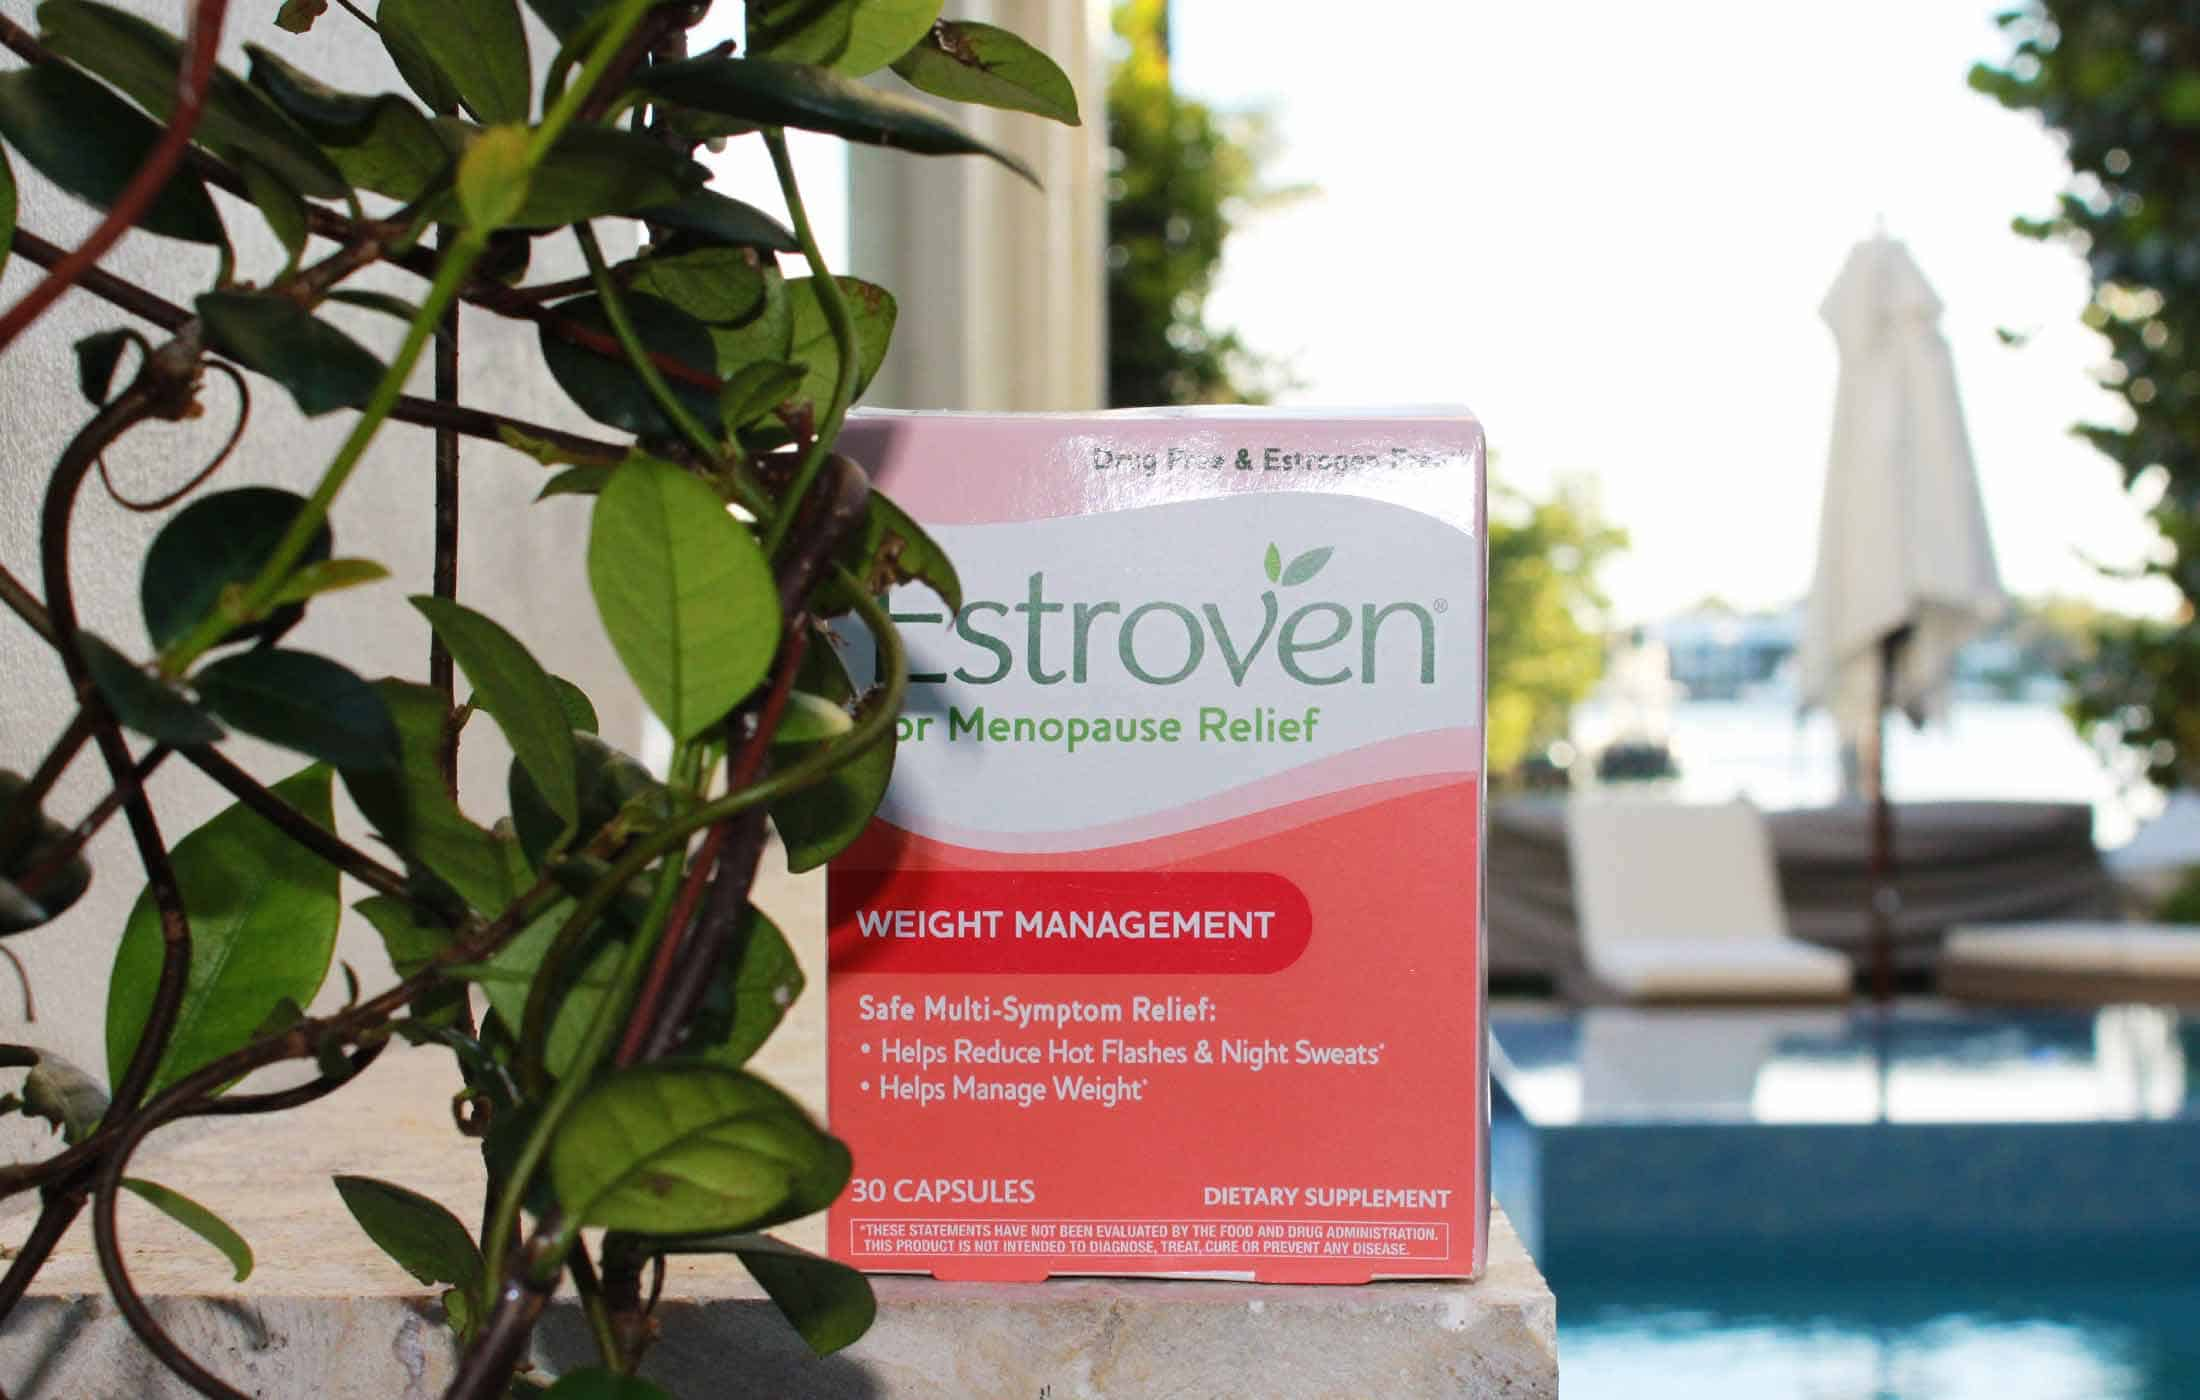 Estroven Weight Loss Review Does It Reduce Hot Flashes And Night Sweats